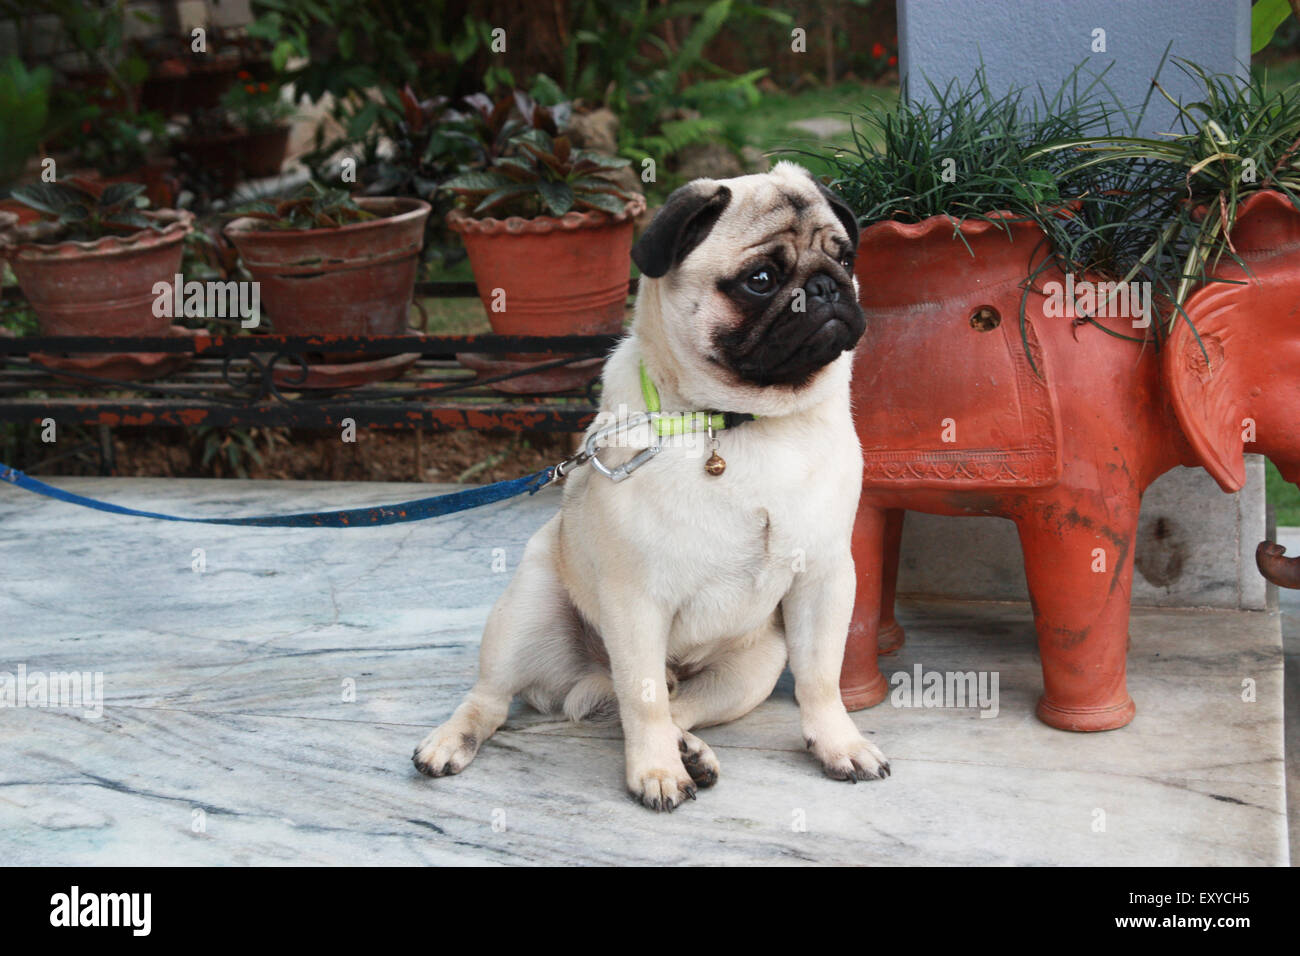 A pug waiting for its owner - Stock Image